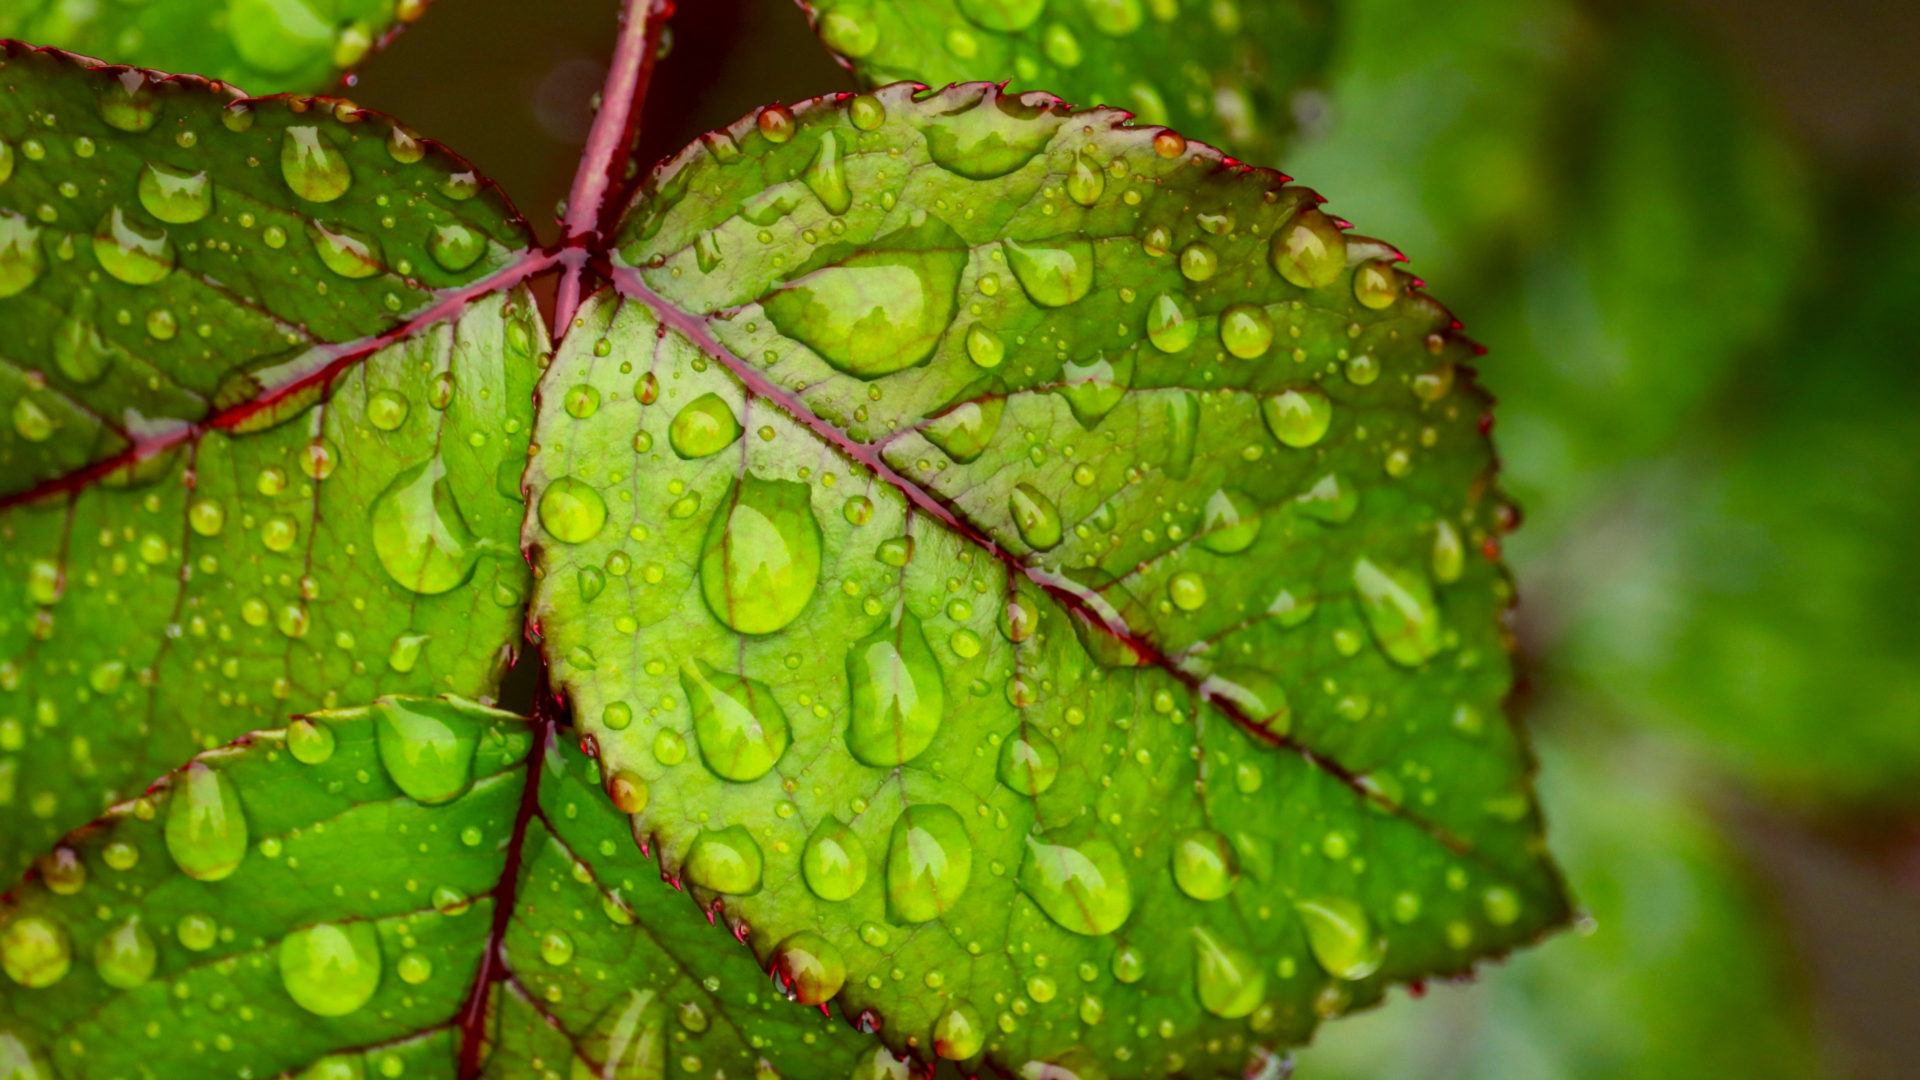 Water Droplets On Green Leaf 4K Ultra HD Wallpapers For Mobile Phones Tablet And PC 3840x2160